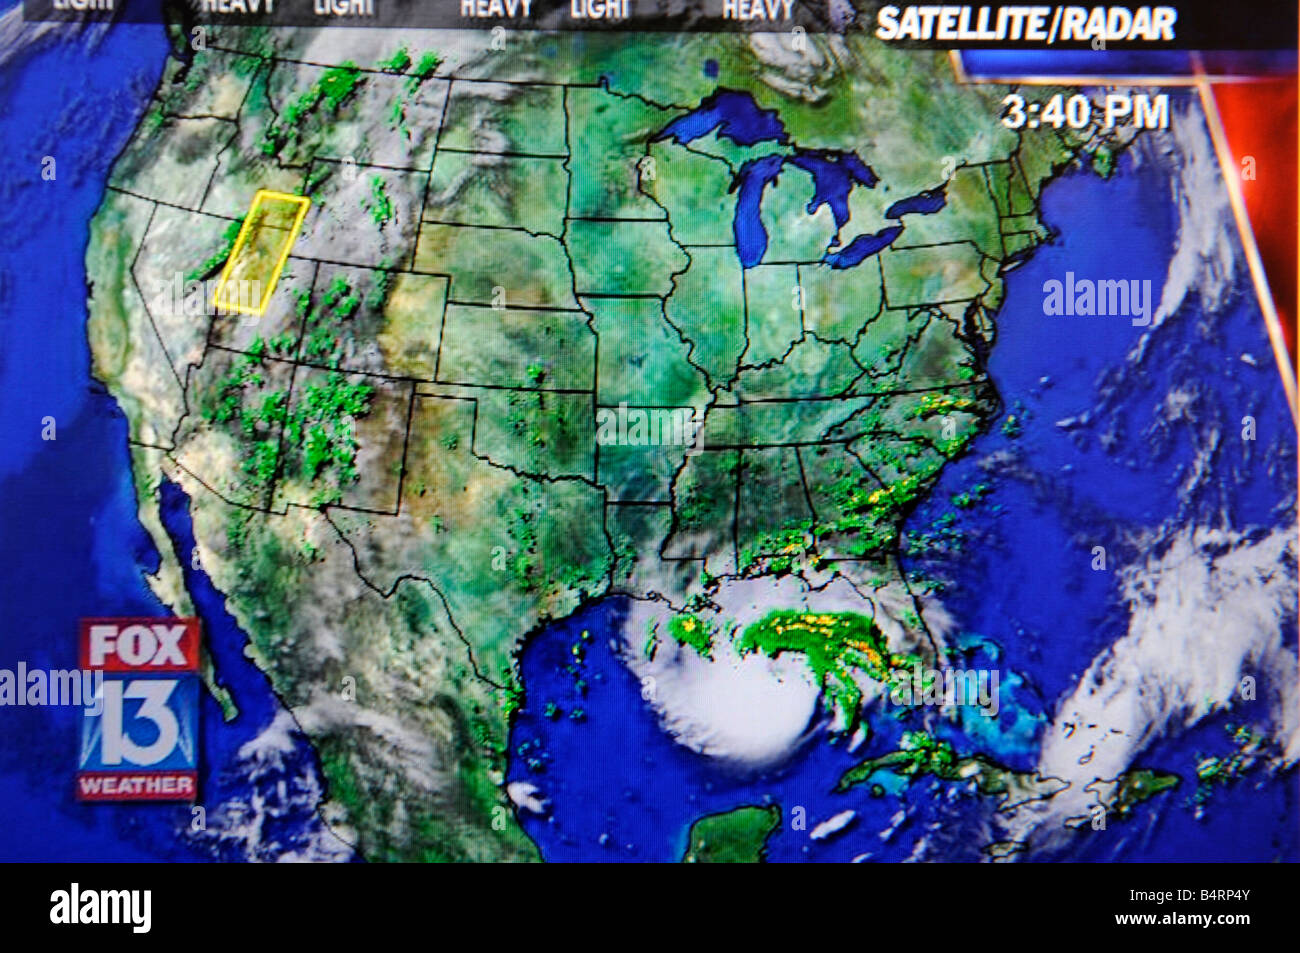 Tv Weather Map.Weather Forecast Television Stock Photos Weather Forecast